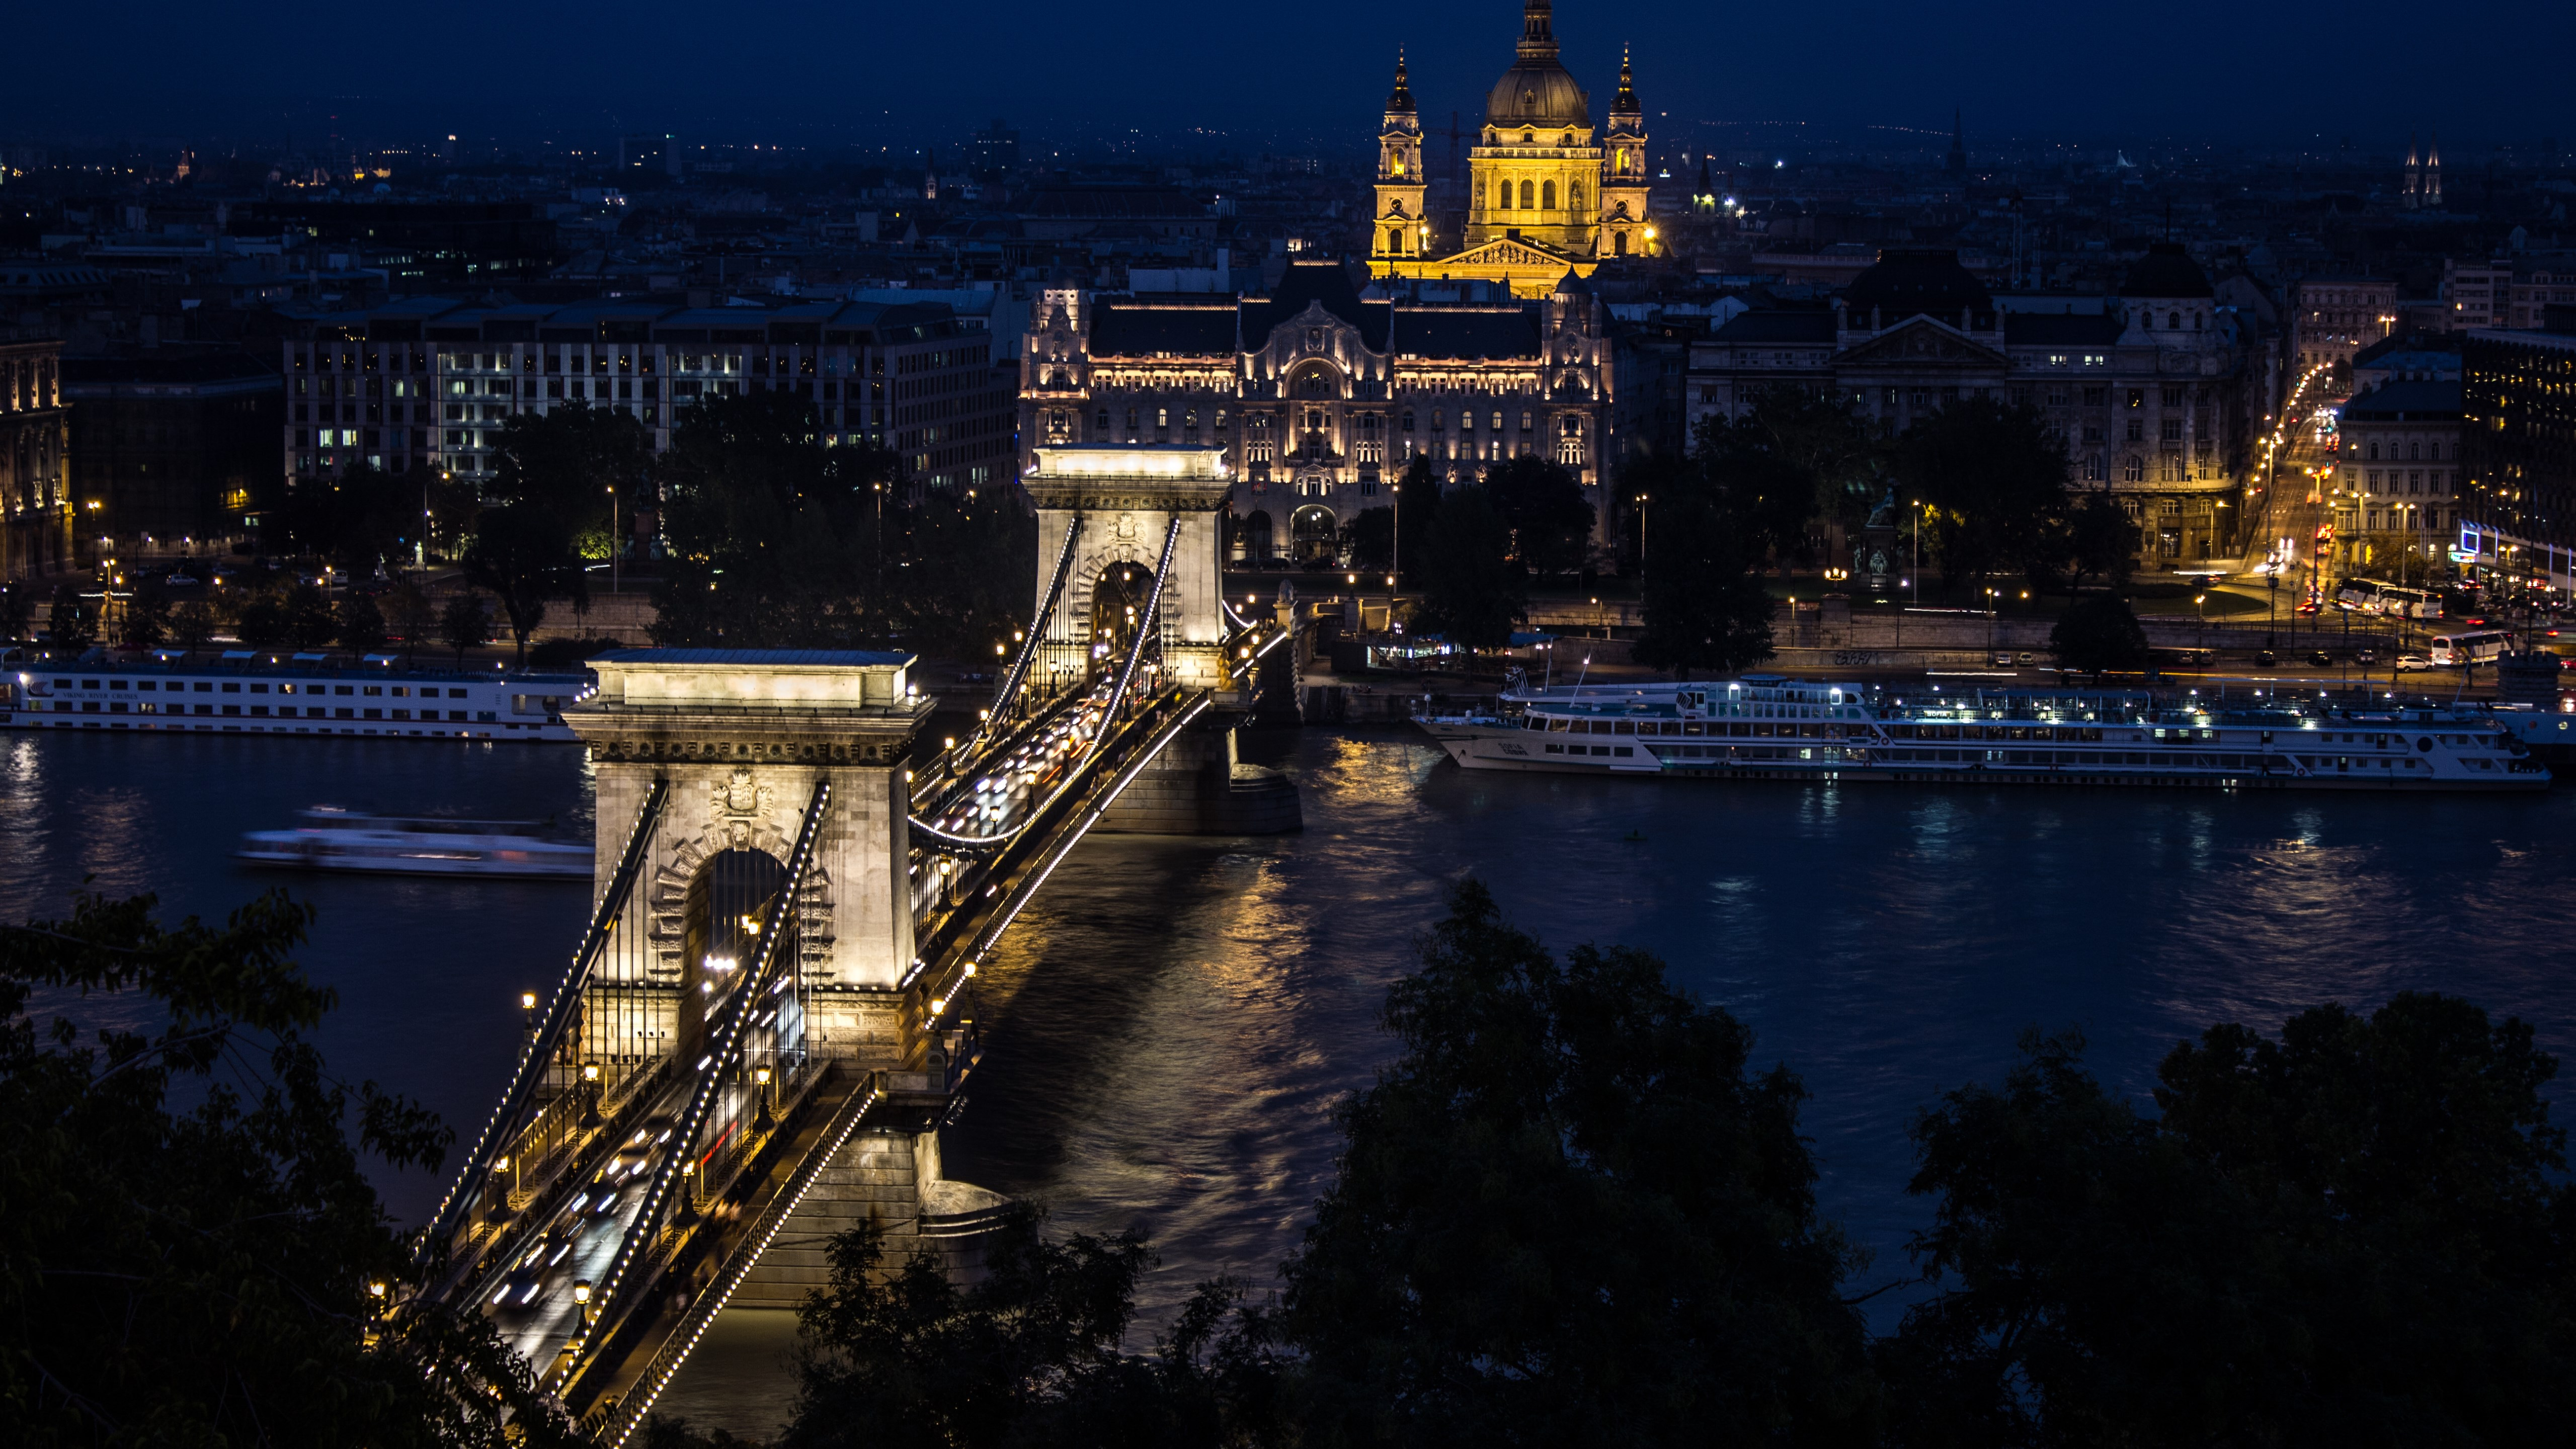 Budapest by Night wallpaper 5120x2880